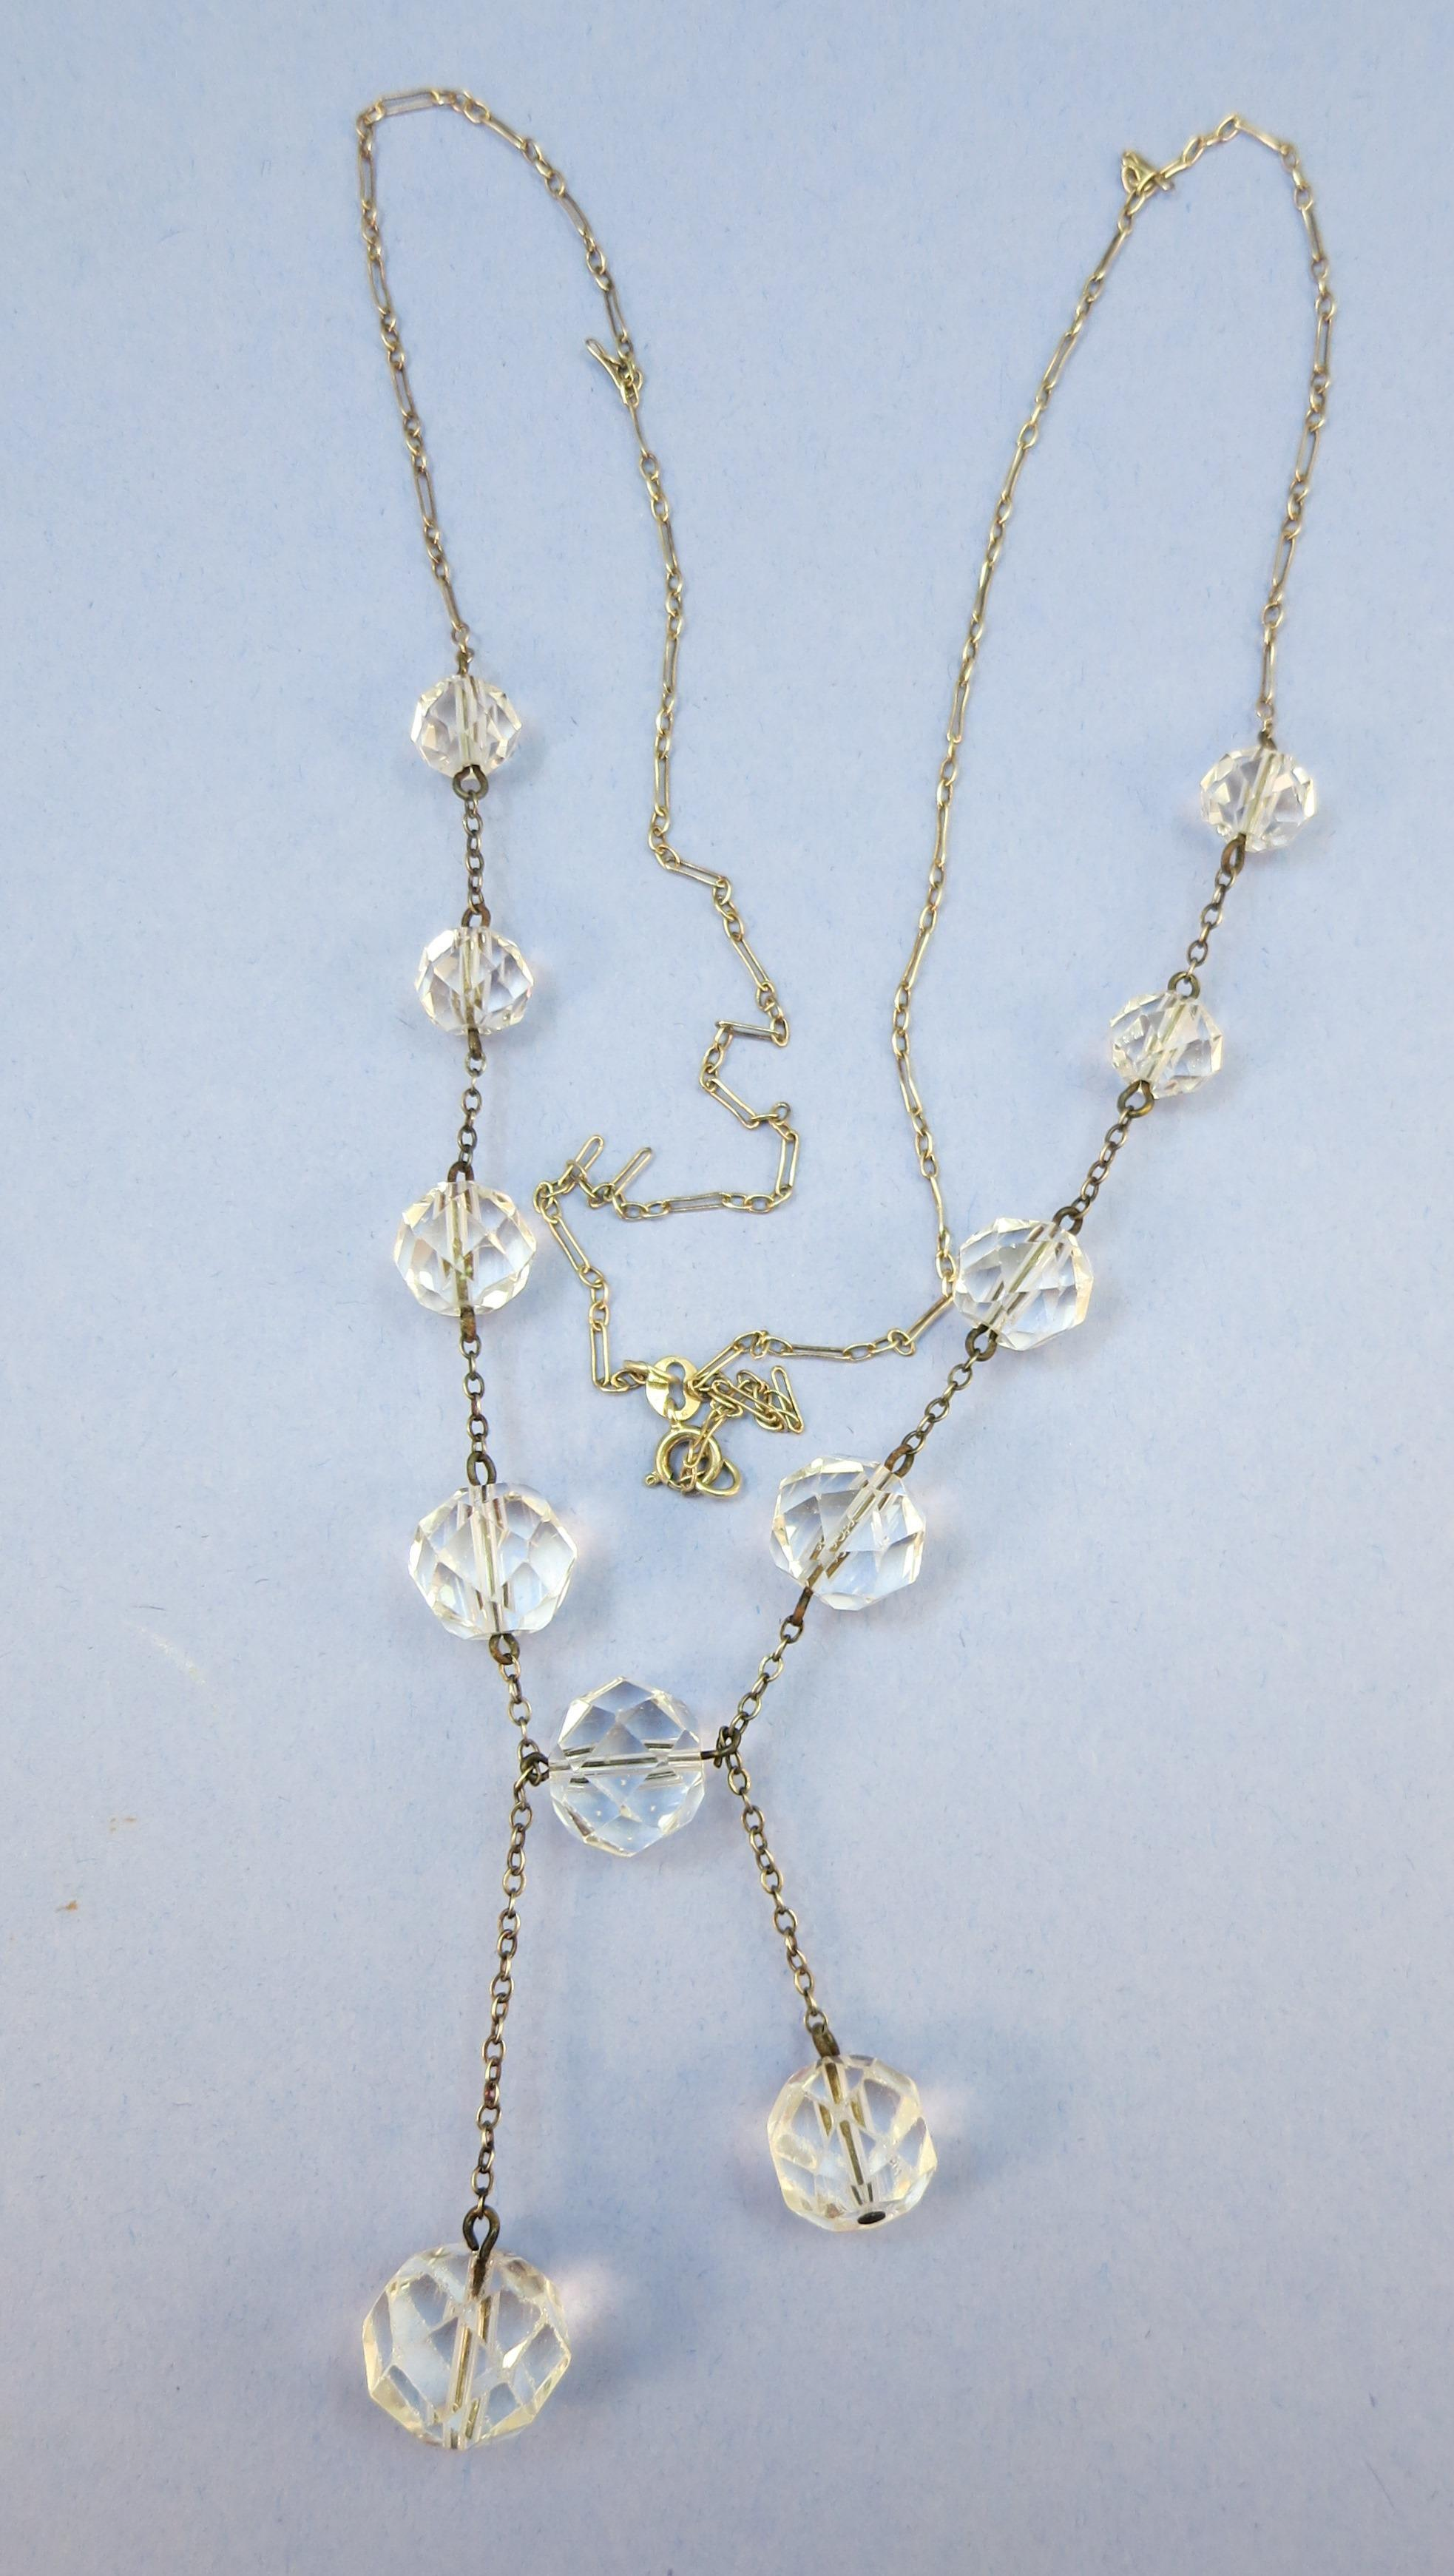 VINTAGE 28 Inch Sterling Chain with 9 Faceted Crystal Ball Necklace